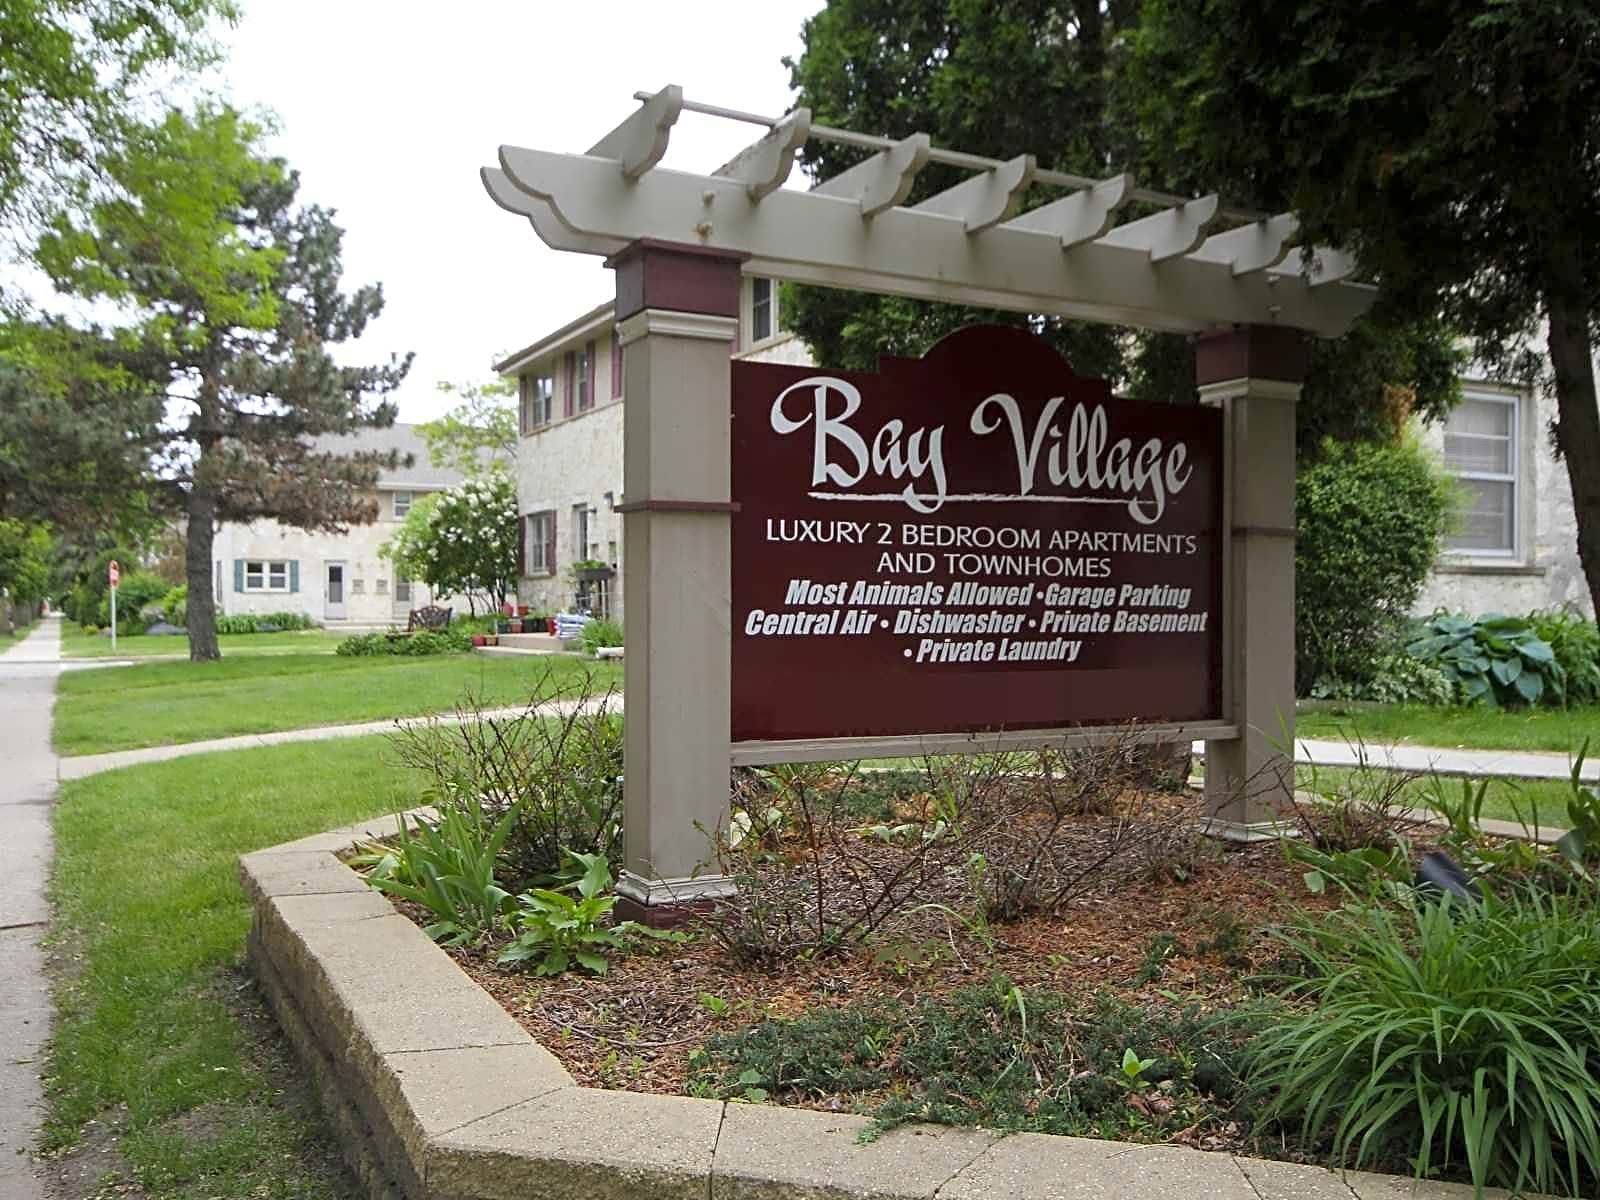 Apartments Near Stritch Bay Village Townhomes for Cardinal Stritch University Students in Milwaukee, WI